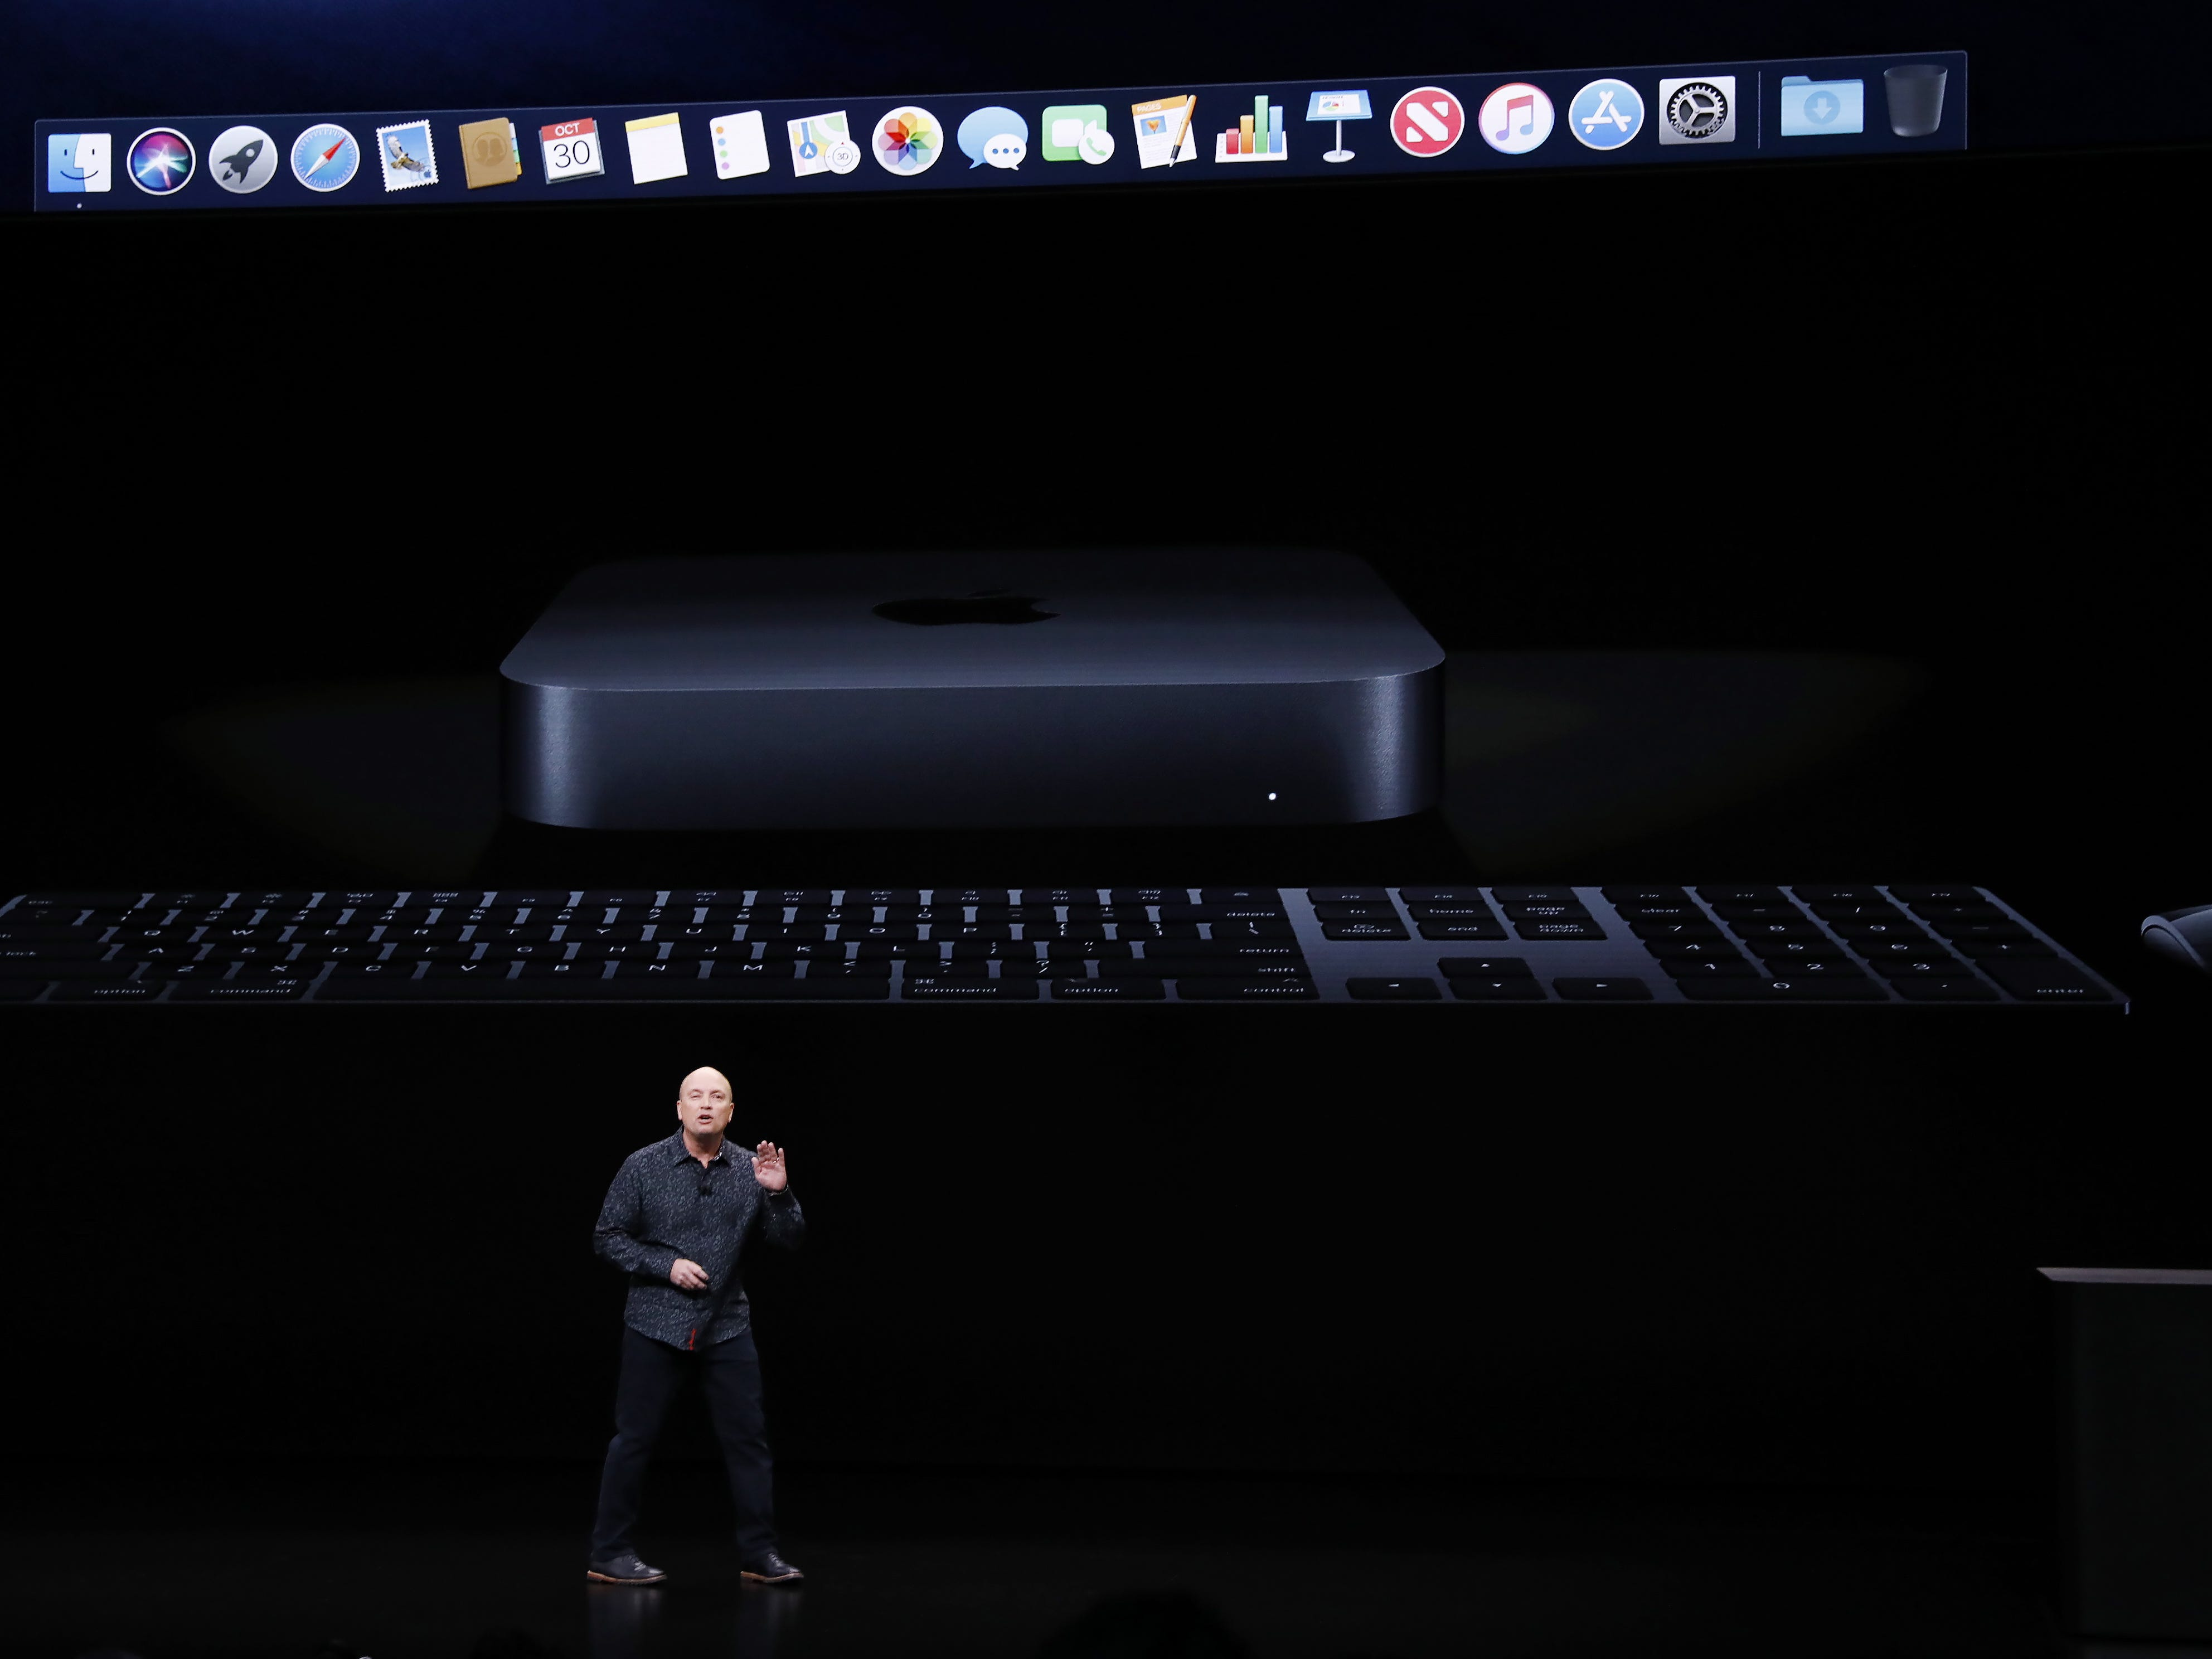 Apple Senior Director of Mac Hardware Product Marketing, Tom Boger, speaks about the new Mac mini during an Apple special event at the Howard Gilman Opera House at the Brooklyn Academy of Music before the start of an Apple event in New York, Tuesday, Oct. 30, 2018.